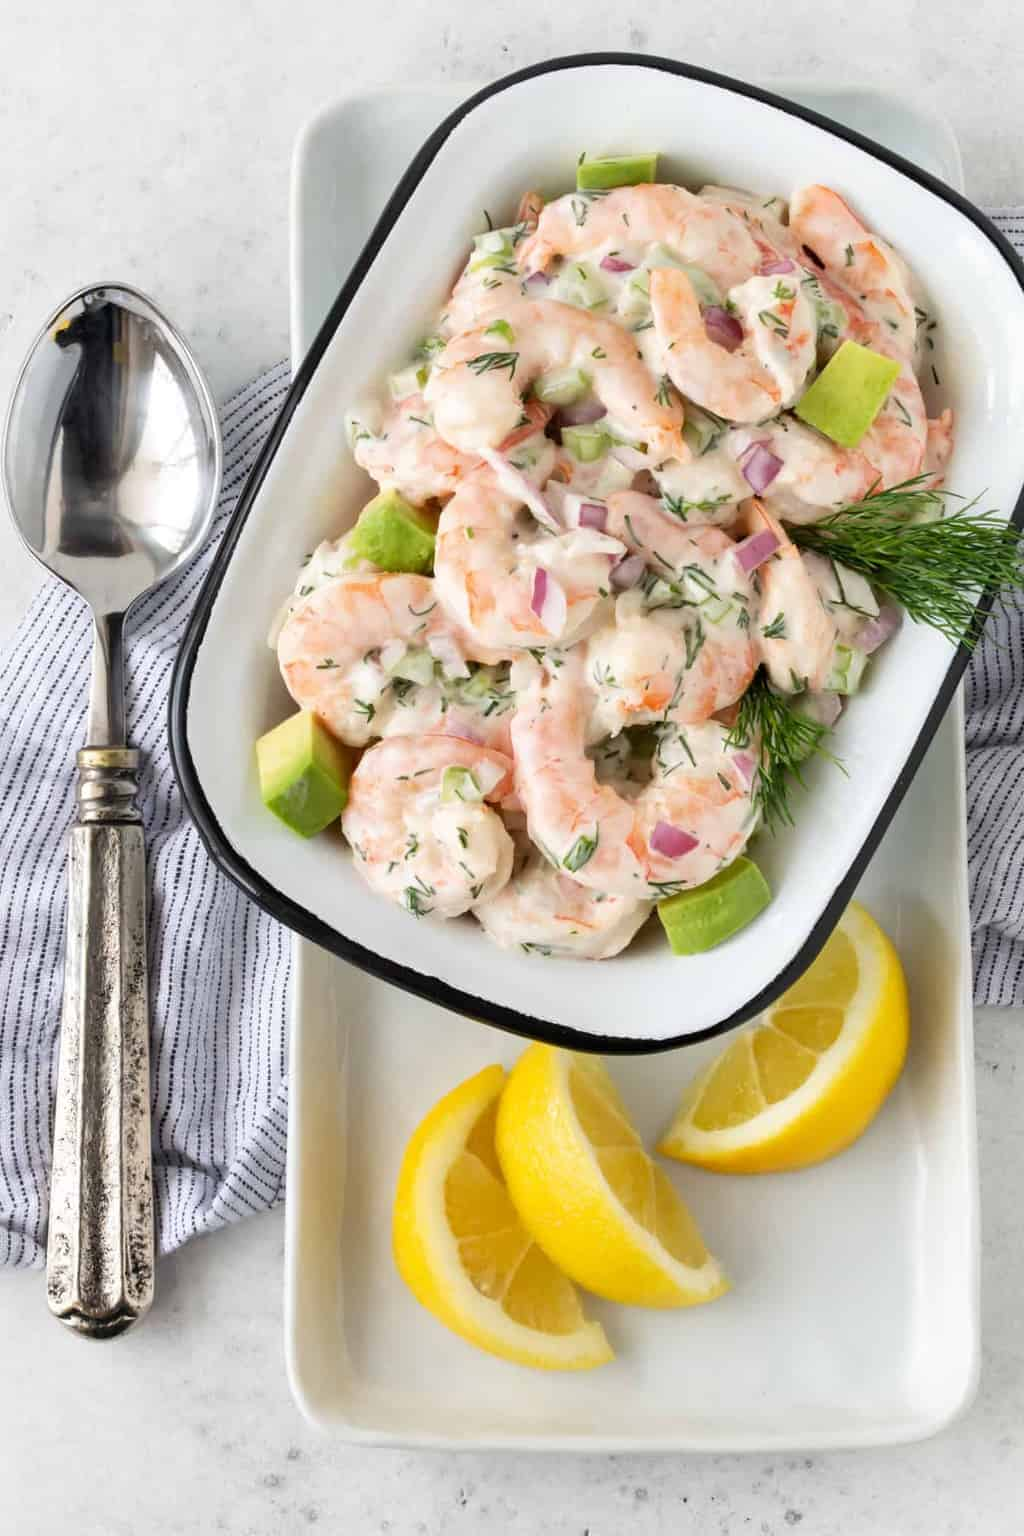 Top down image of Shrimp Salad with Avocado in a white serving dish with a silver spoon for serving and fresh lemon wedges for garnish.